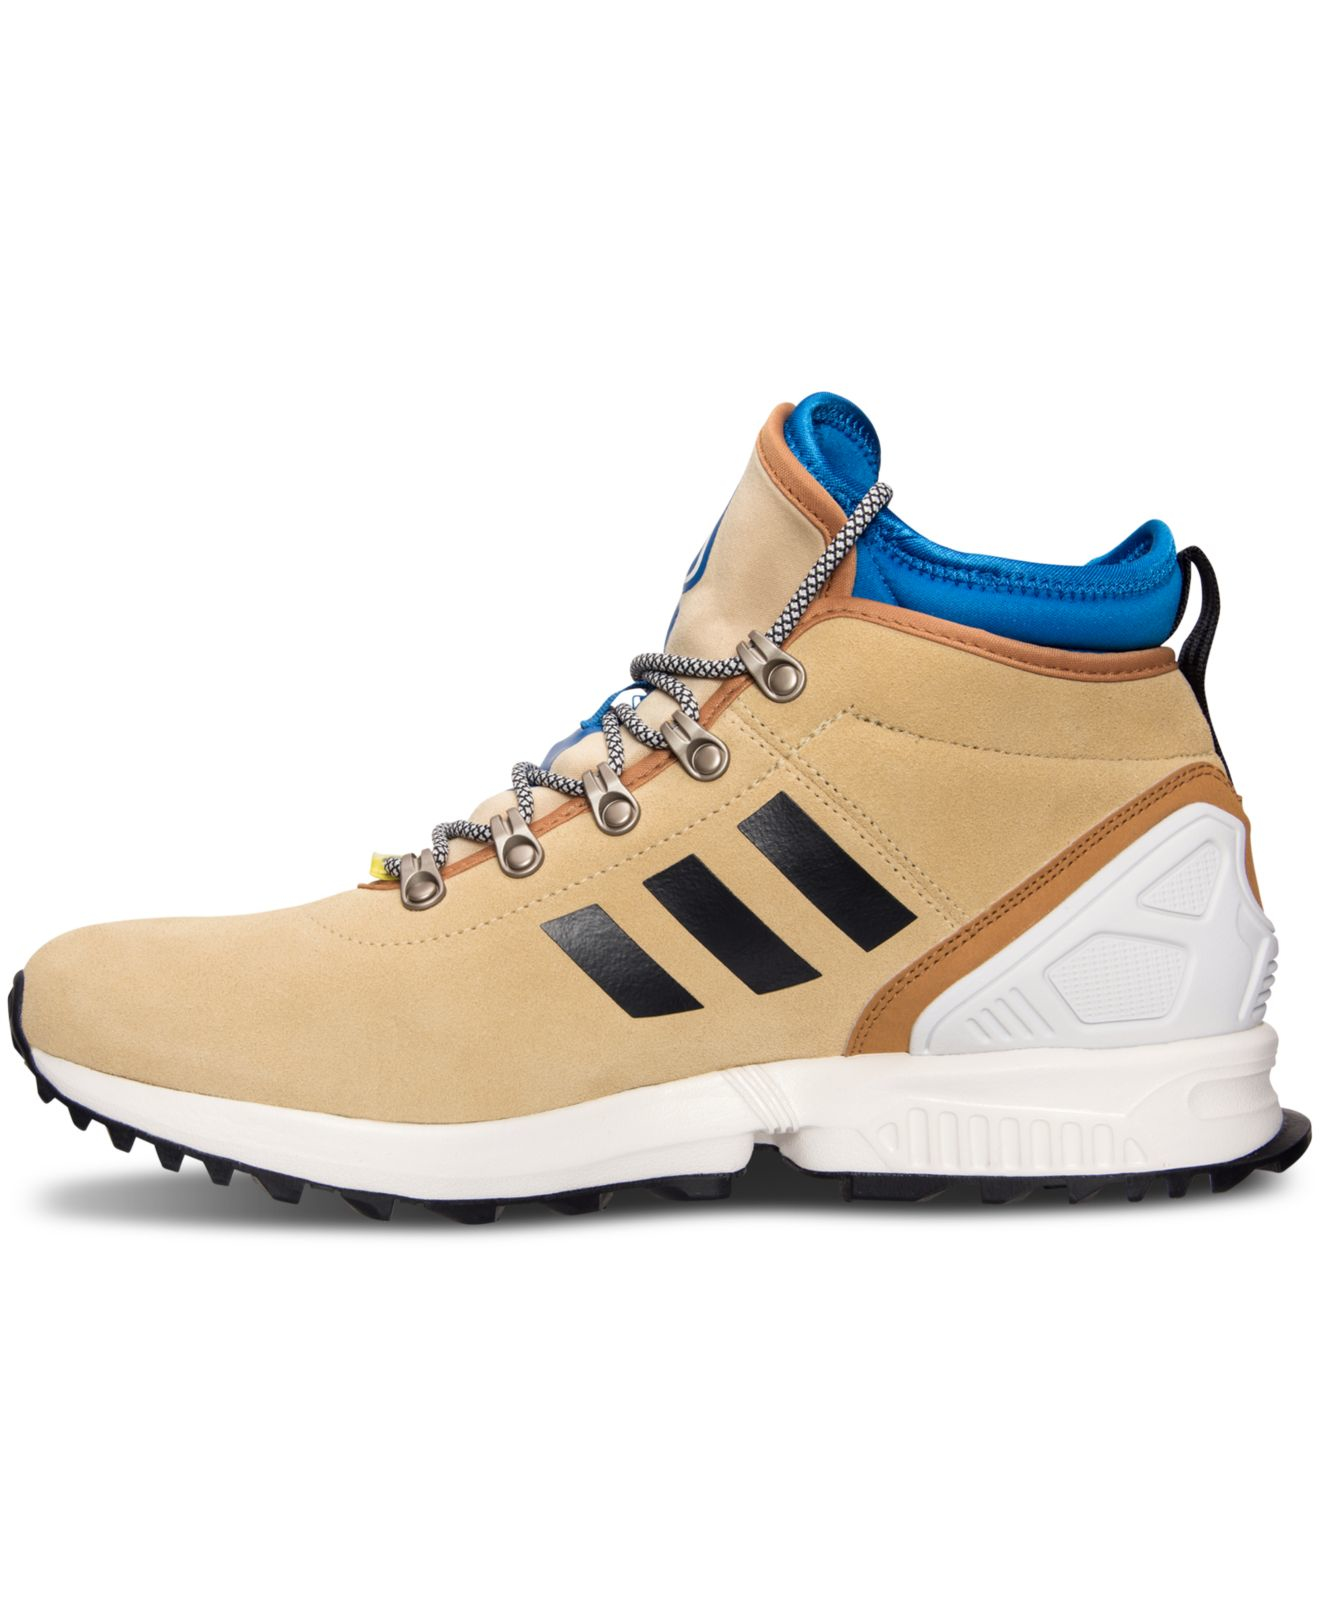 9d8b5551a9d3 wholesale adidas big boys zx flux casual sneakers from finish line 82330  59f09  inexpensive lyst adidas mens originals zx flux winter sneakerboots  from ...